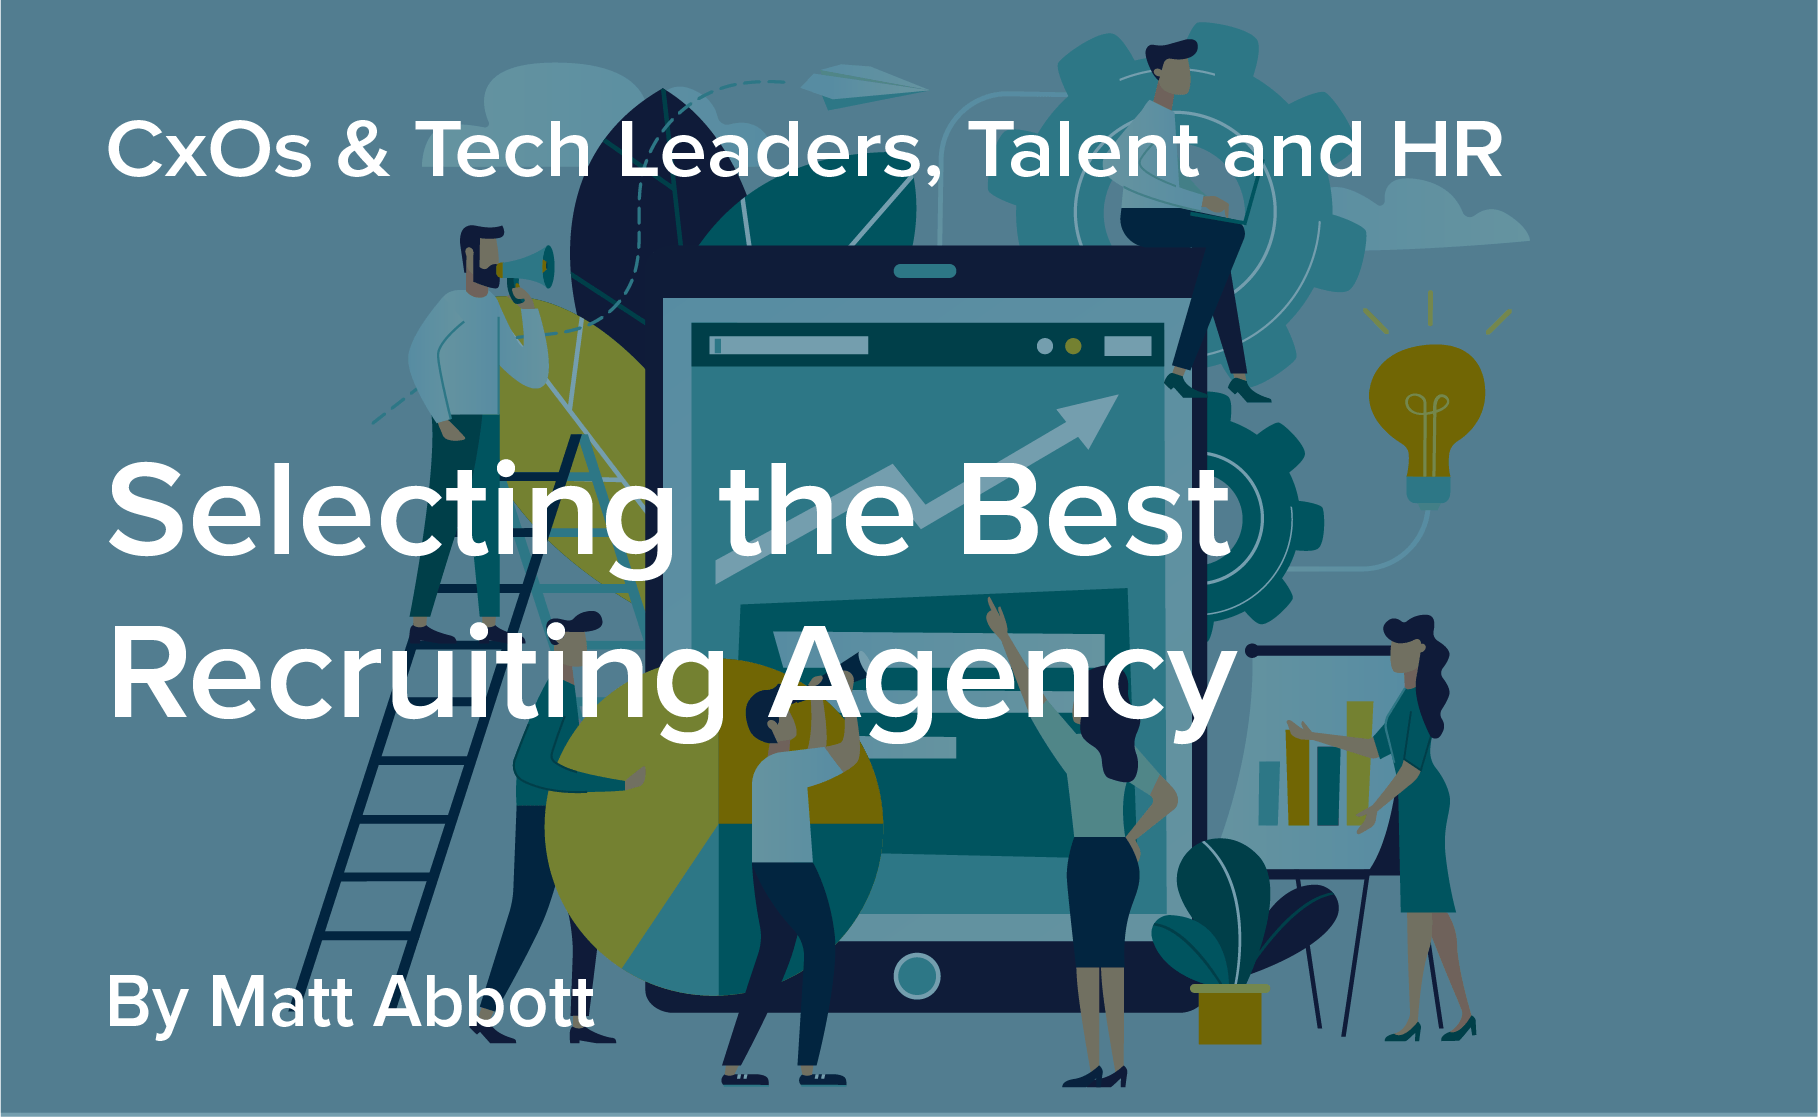 Selecting the best recruiting agency